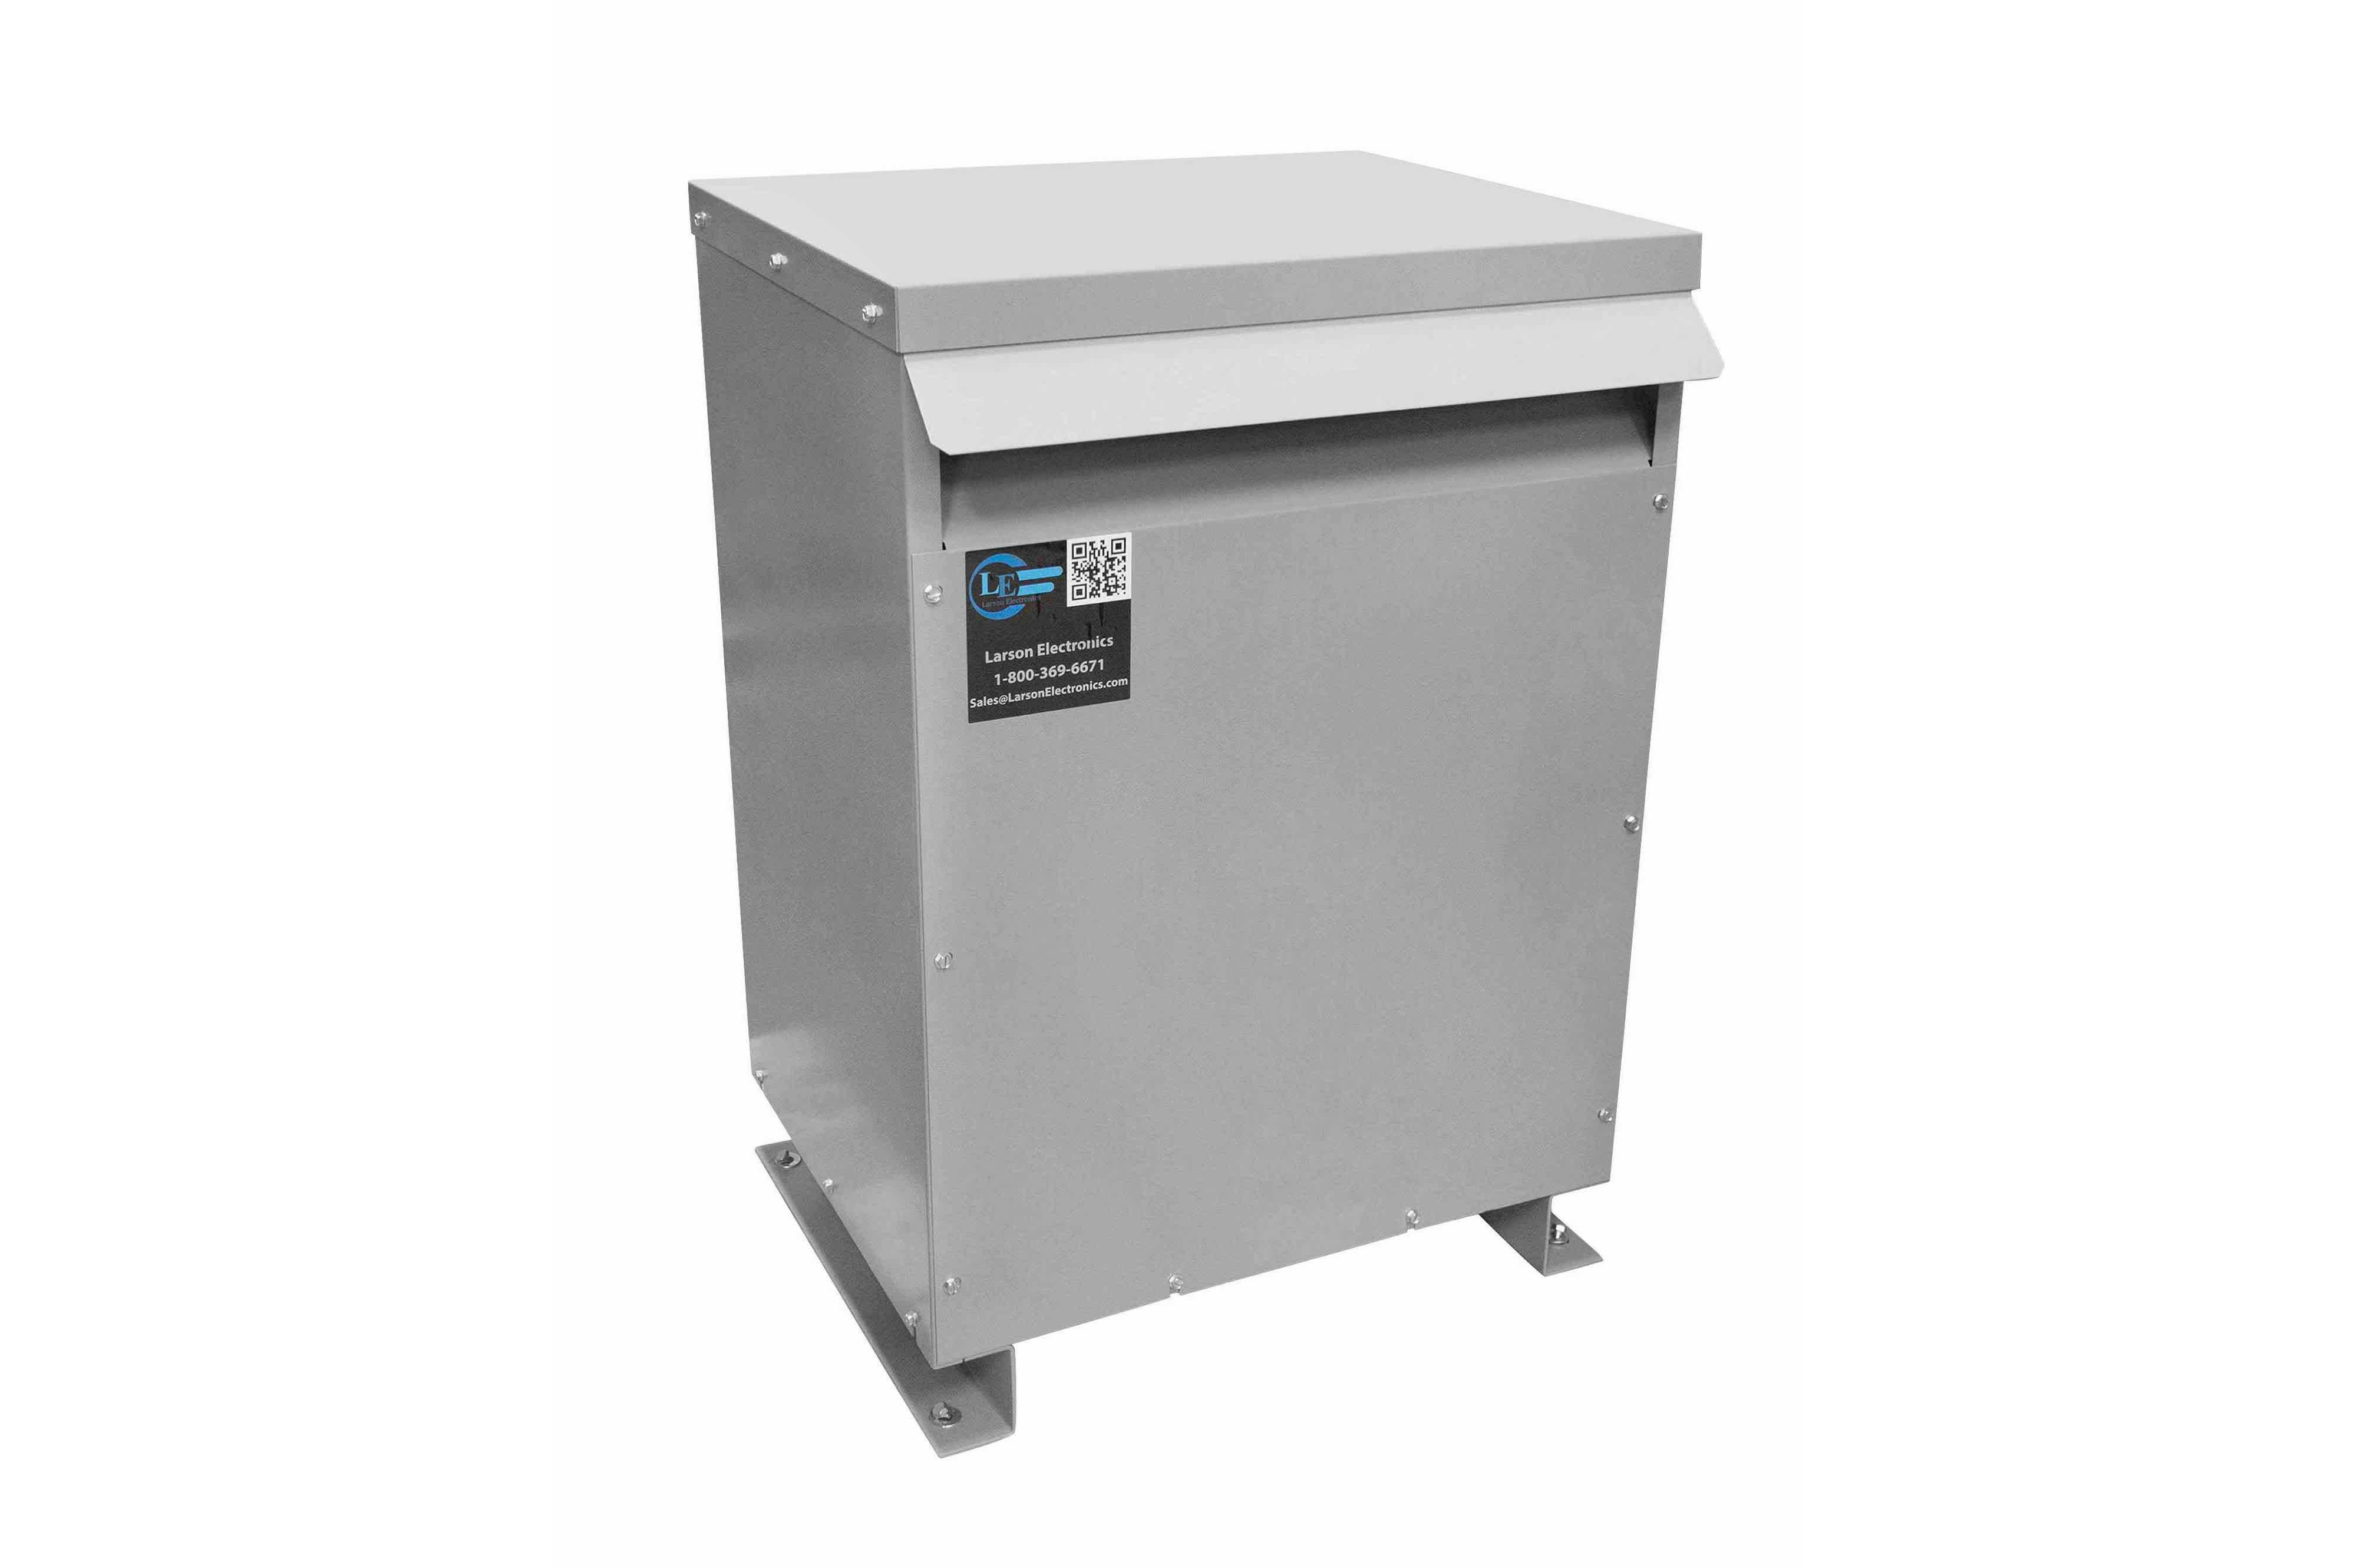 45 kVA 3PH Isolation Transformer, 440V Delta Primary, 240 Delta Secondary, N3R, Ventilated, 60 Hz